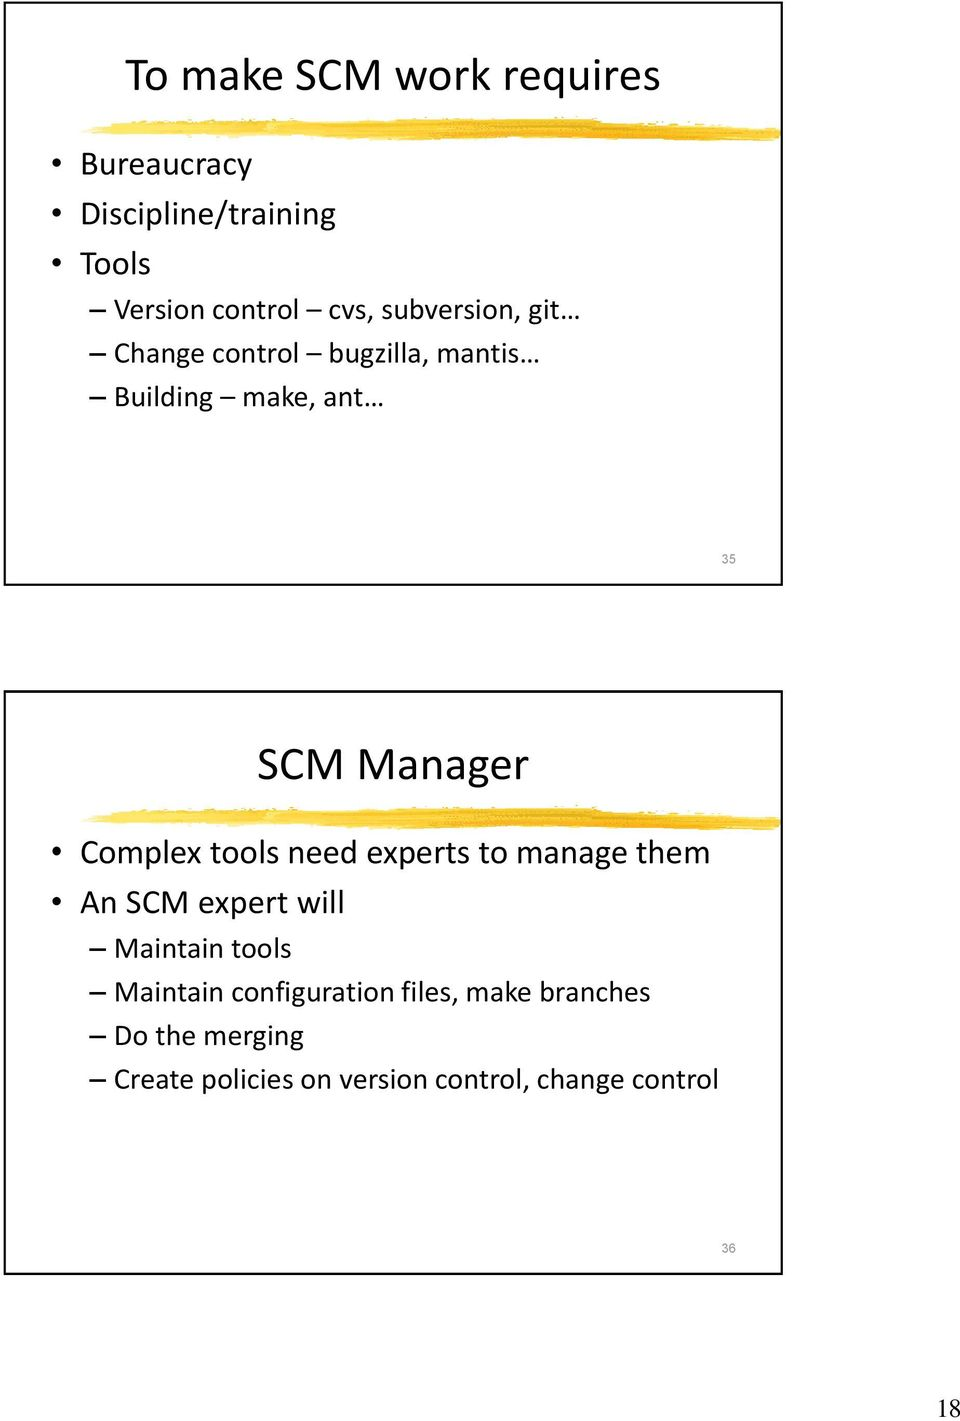 tools need experts to manage them An SCM expert will Maintain tools Maintain